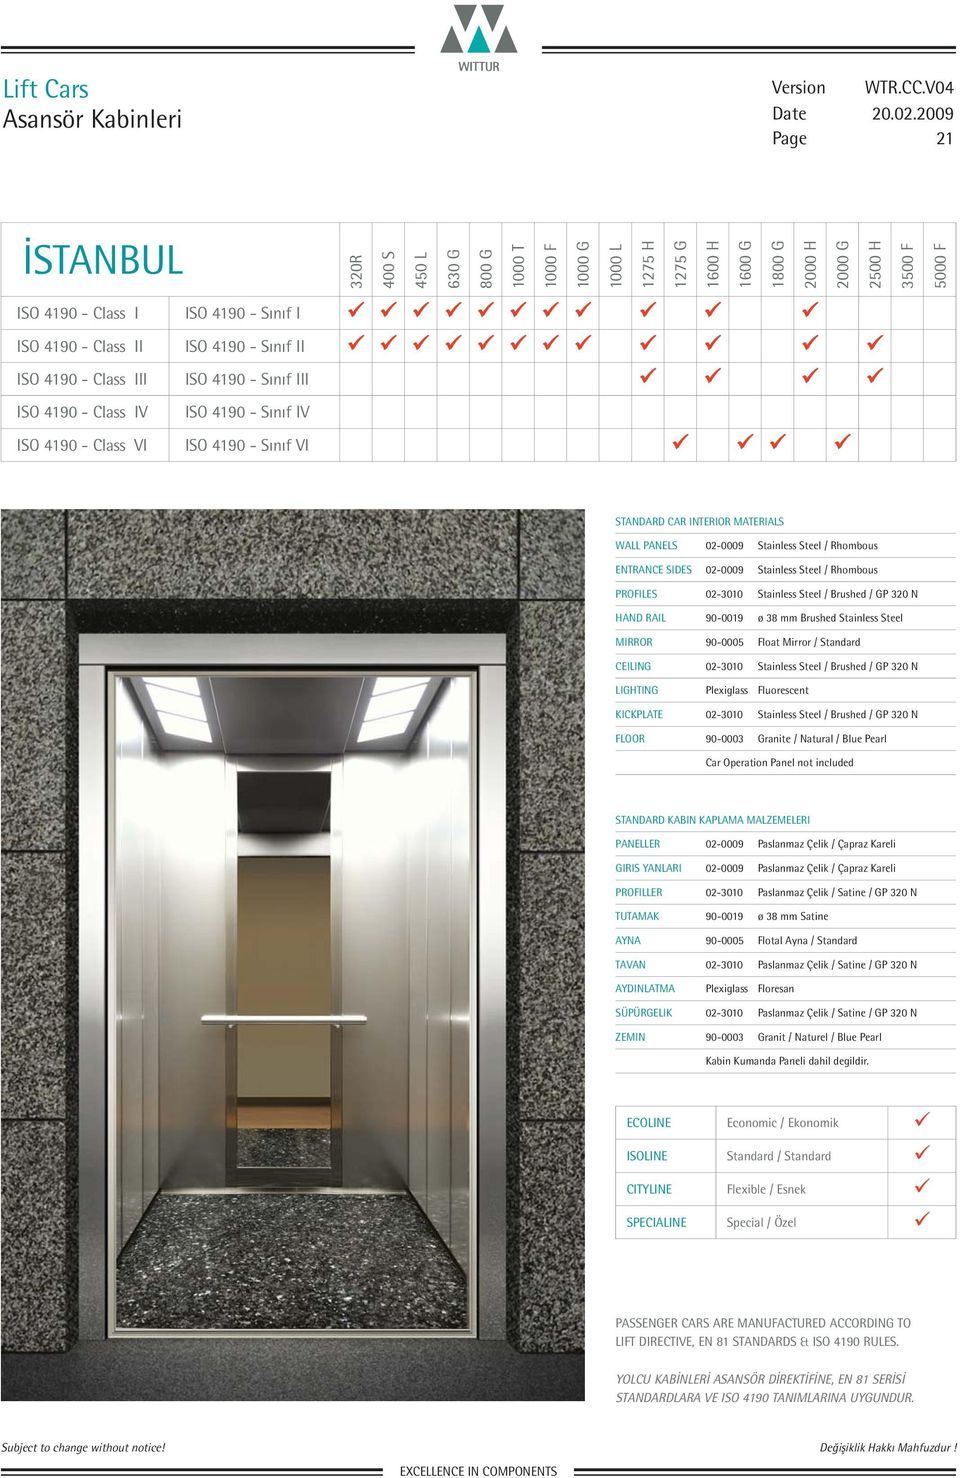 ENTRANCE SIDES 02-0009 Stainless Steel / Rhombous FLOOR 90-0003 Granite / Natural / Blue Pearl PANELLER 02-0009